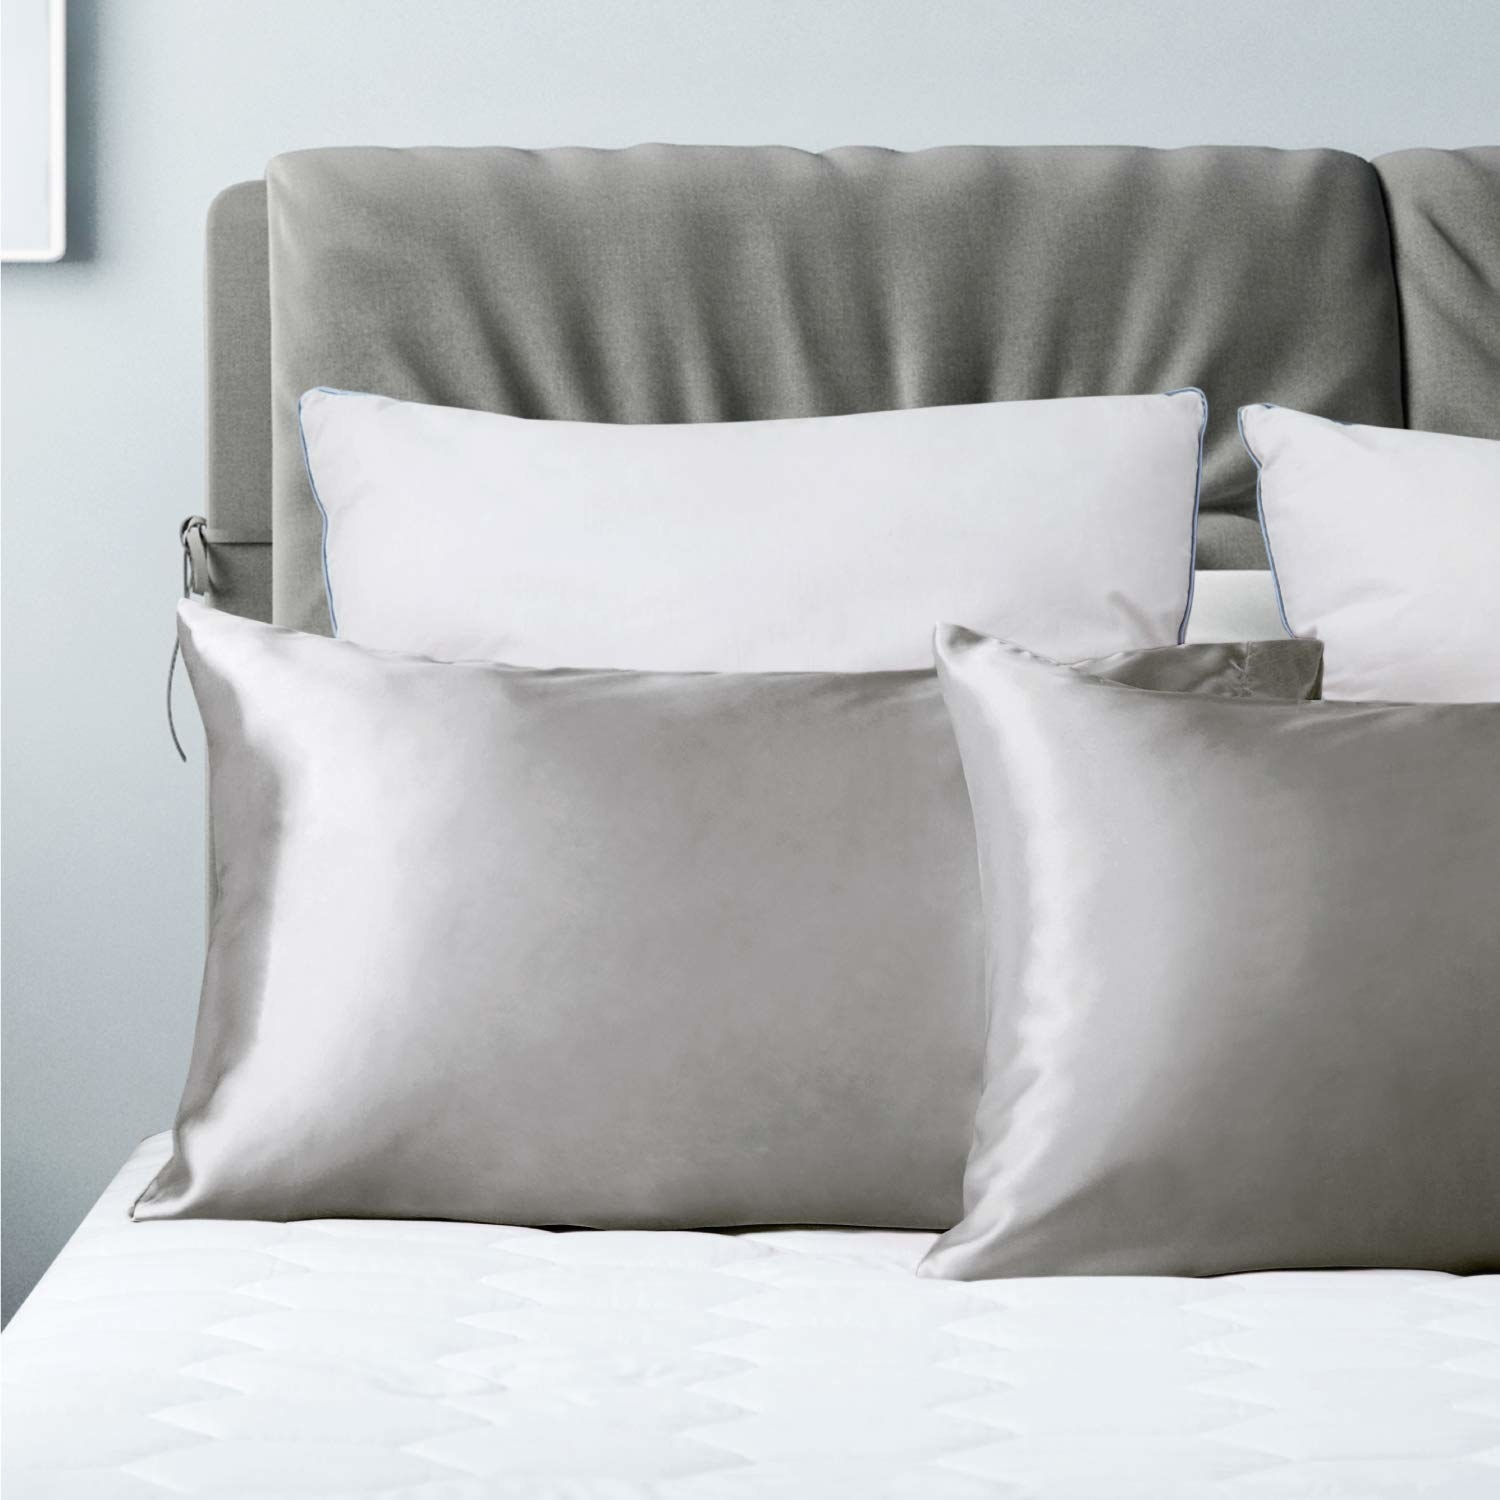 gray satin pillowcases on sleeping pillow on a bed